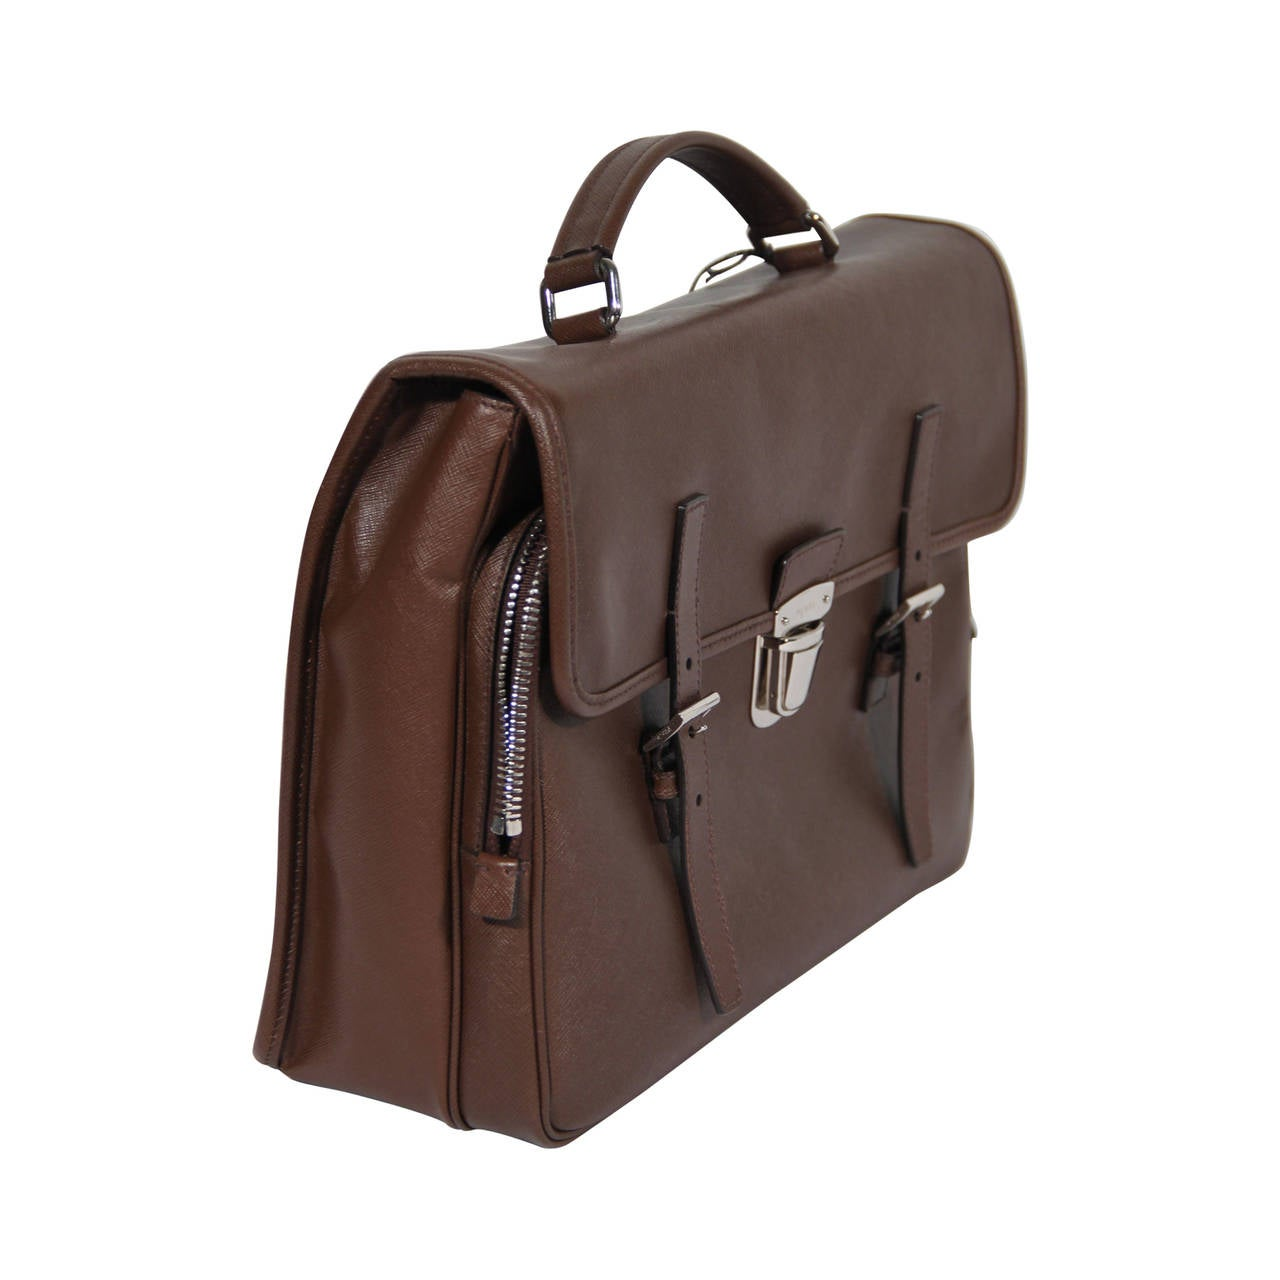 Vintage Prada Briefcases and Attach¨¦s - 4 For Sale at 1stdibs